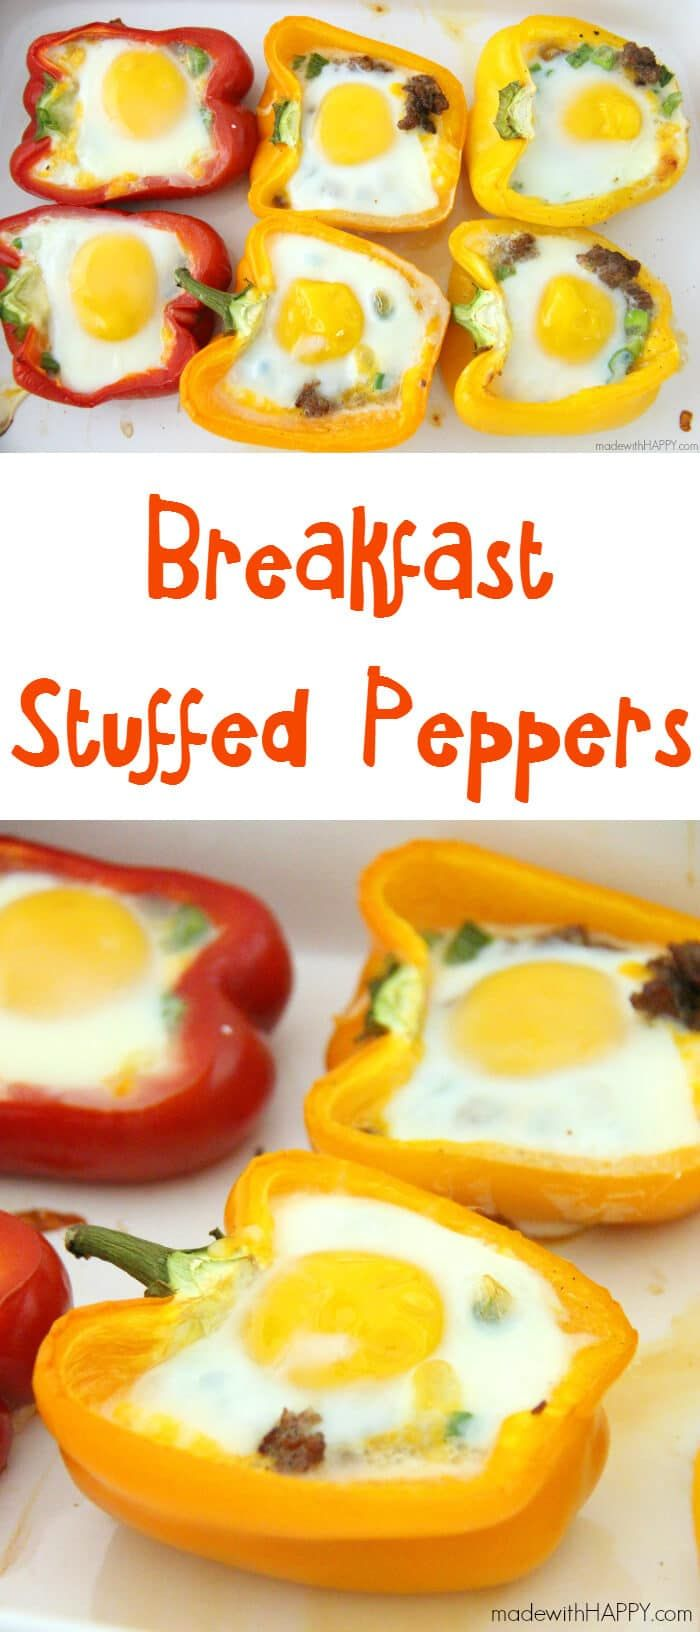 Breakfast Stuffed Peppers - Breakfast Recipes - Made with HAPPY